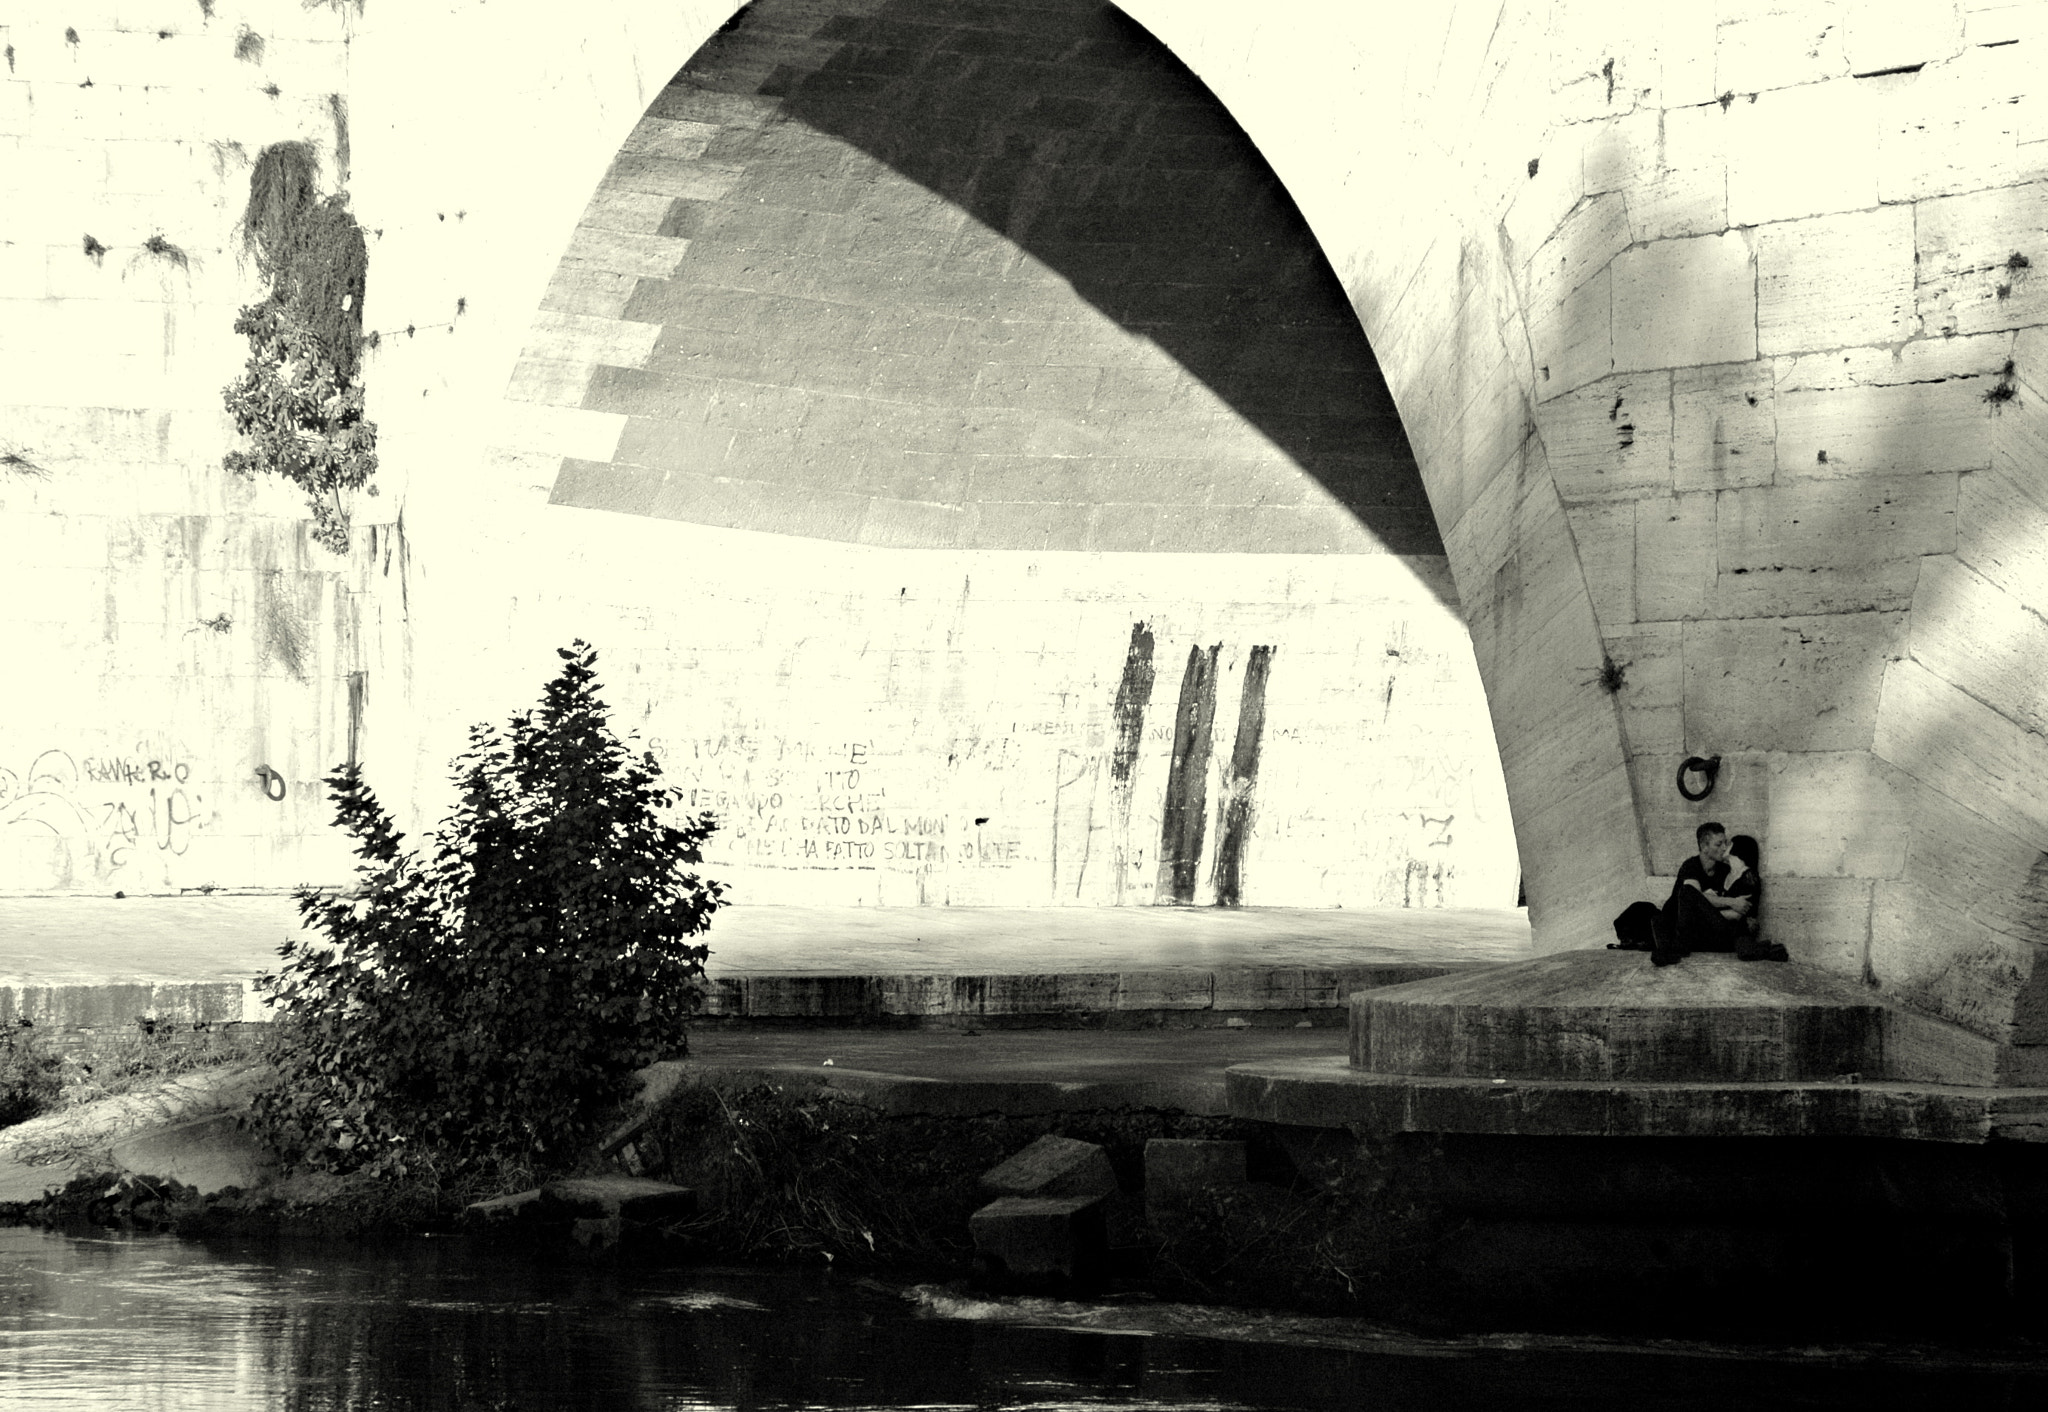 Photograph Tevere in love by Simonetta DiMeo on 500px